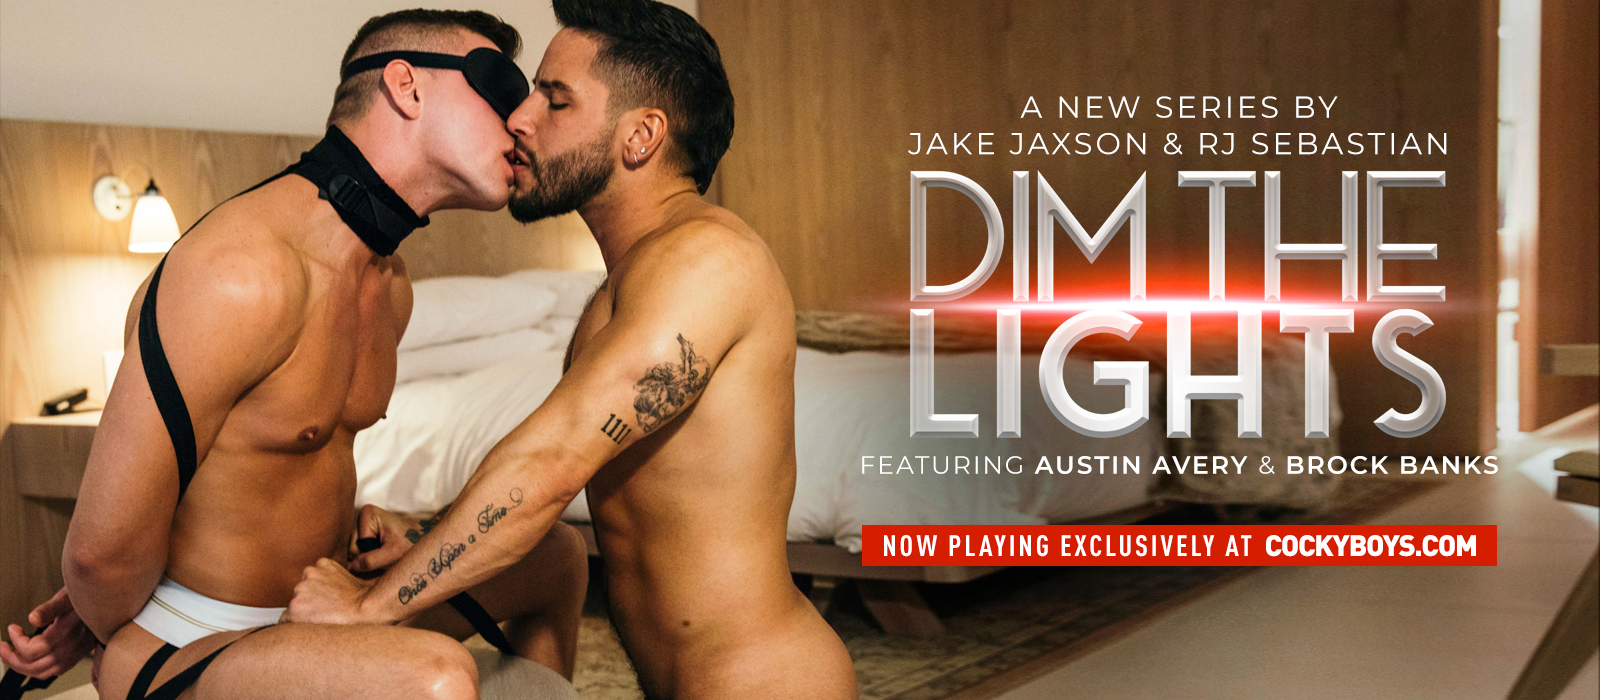 CockyBoys - Dim The Lights - Austin Avery & Brock Banks